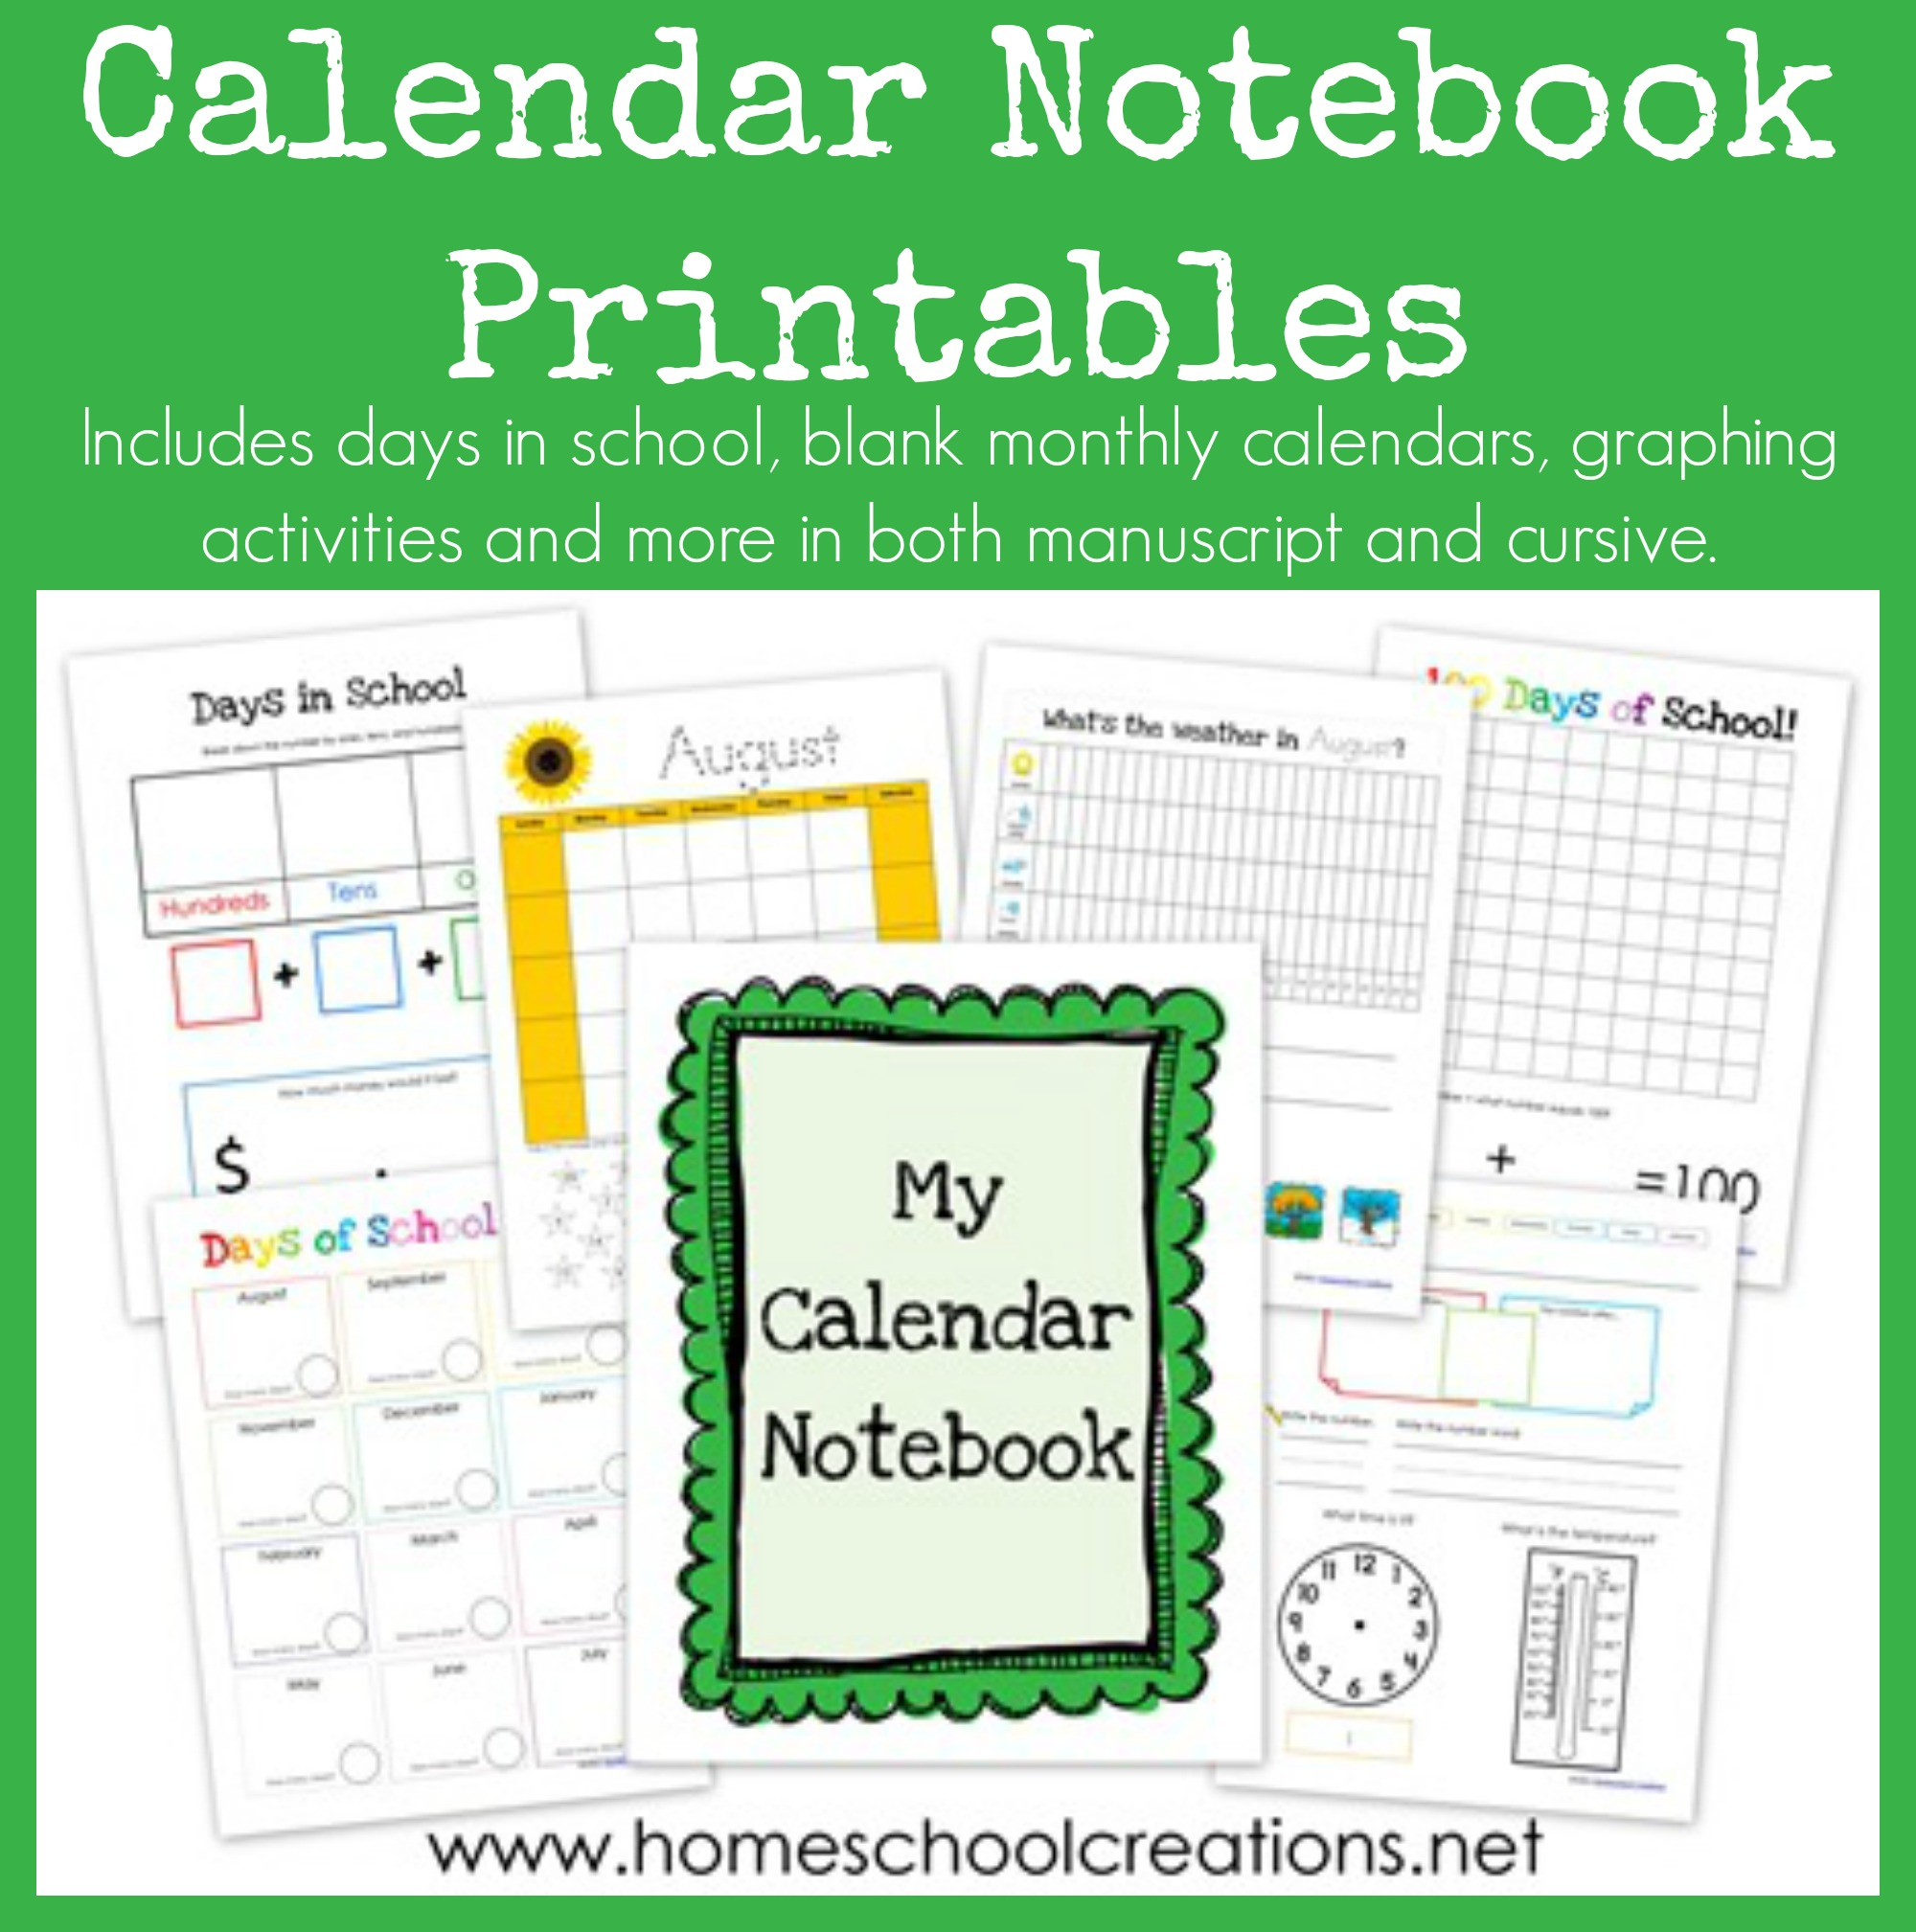 Daily Calendar Journal Kindergarten : Calendar notebook binder printables